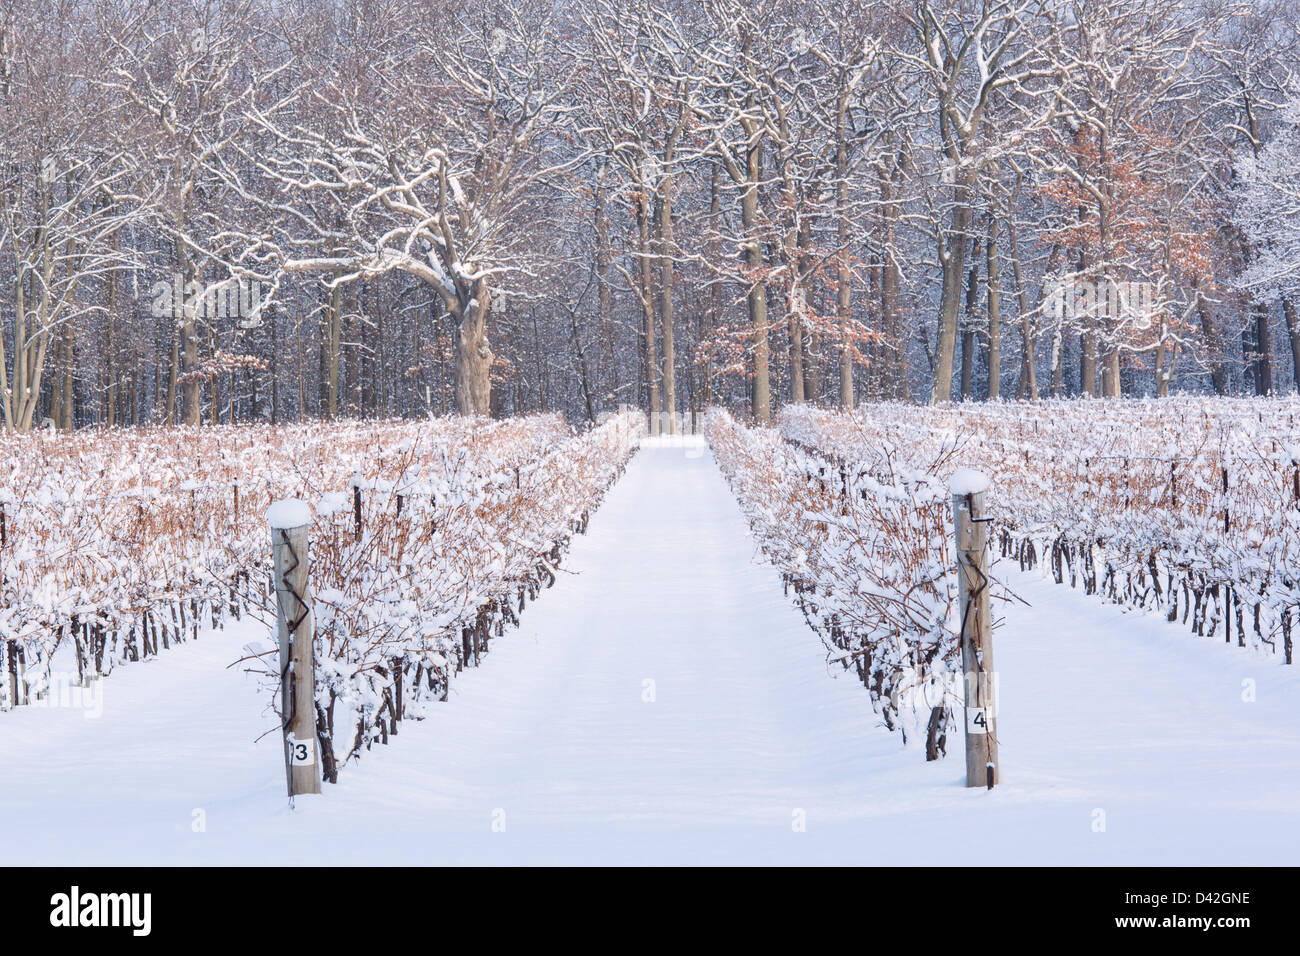 Canada, Ontario, Niagara-on-the-Lake, de raisin vigne en hiver Banque D'Images